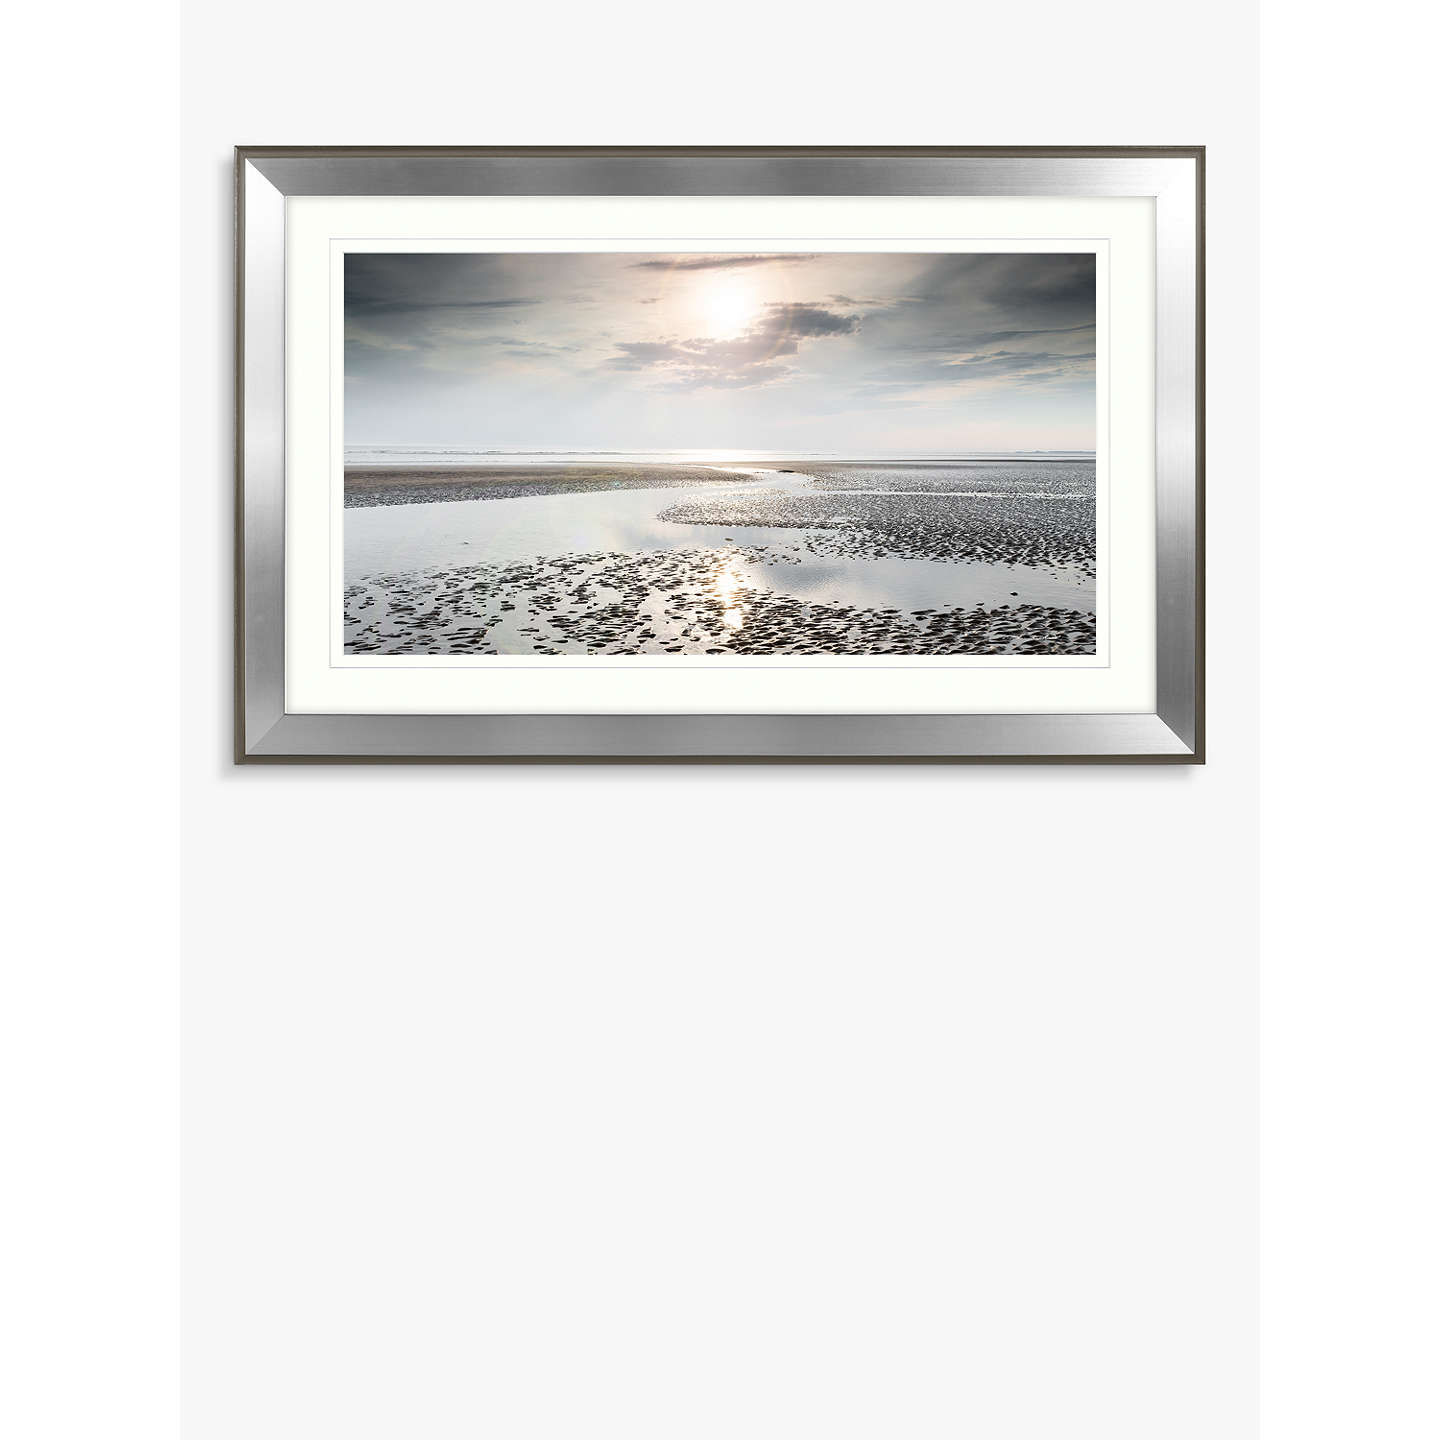 BuyMike Shepherd - Reflections Of Heaven Embellished Framed Print, 110 x 70cm Online at johnlewis.com